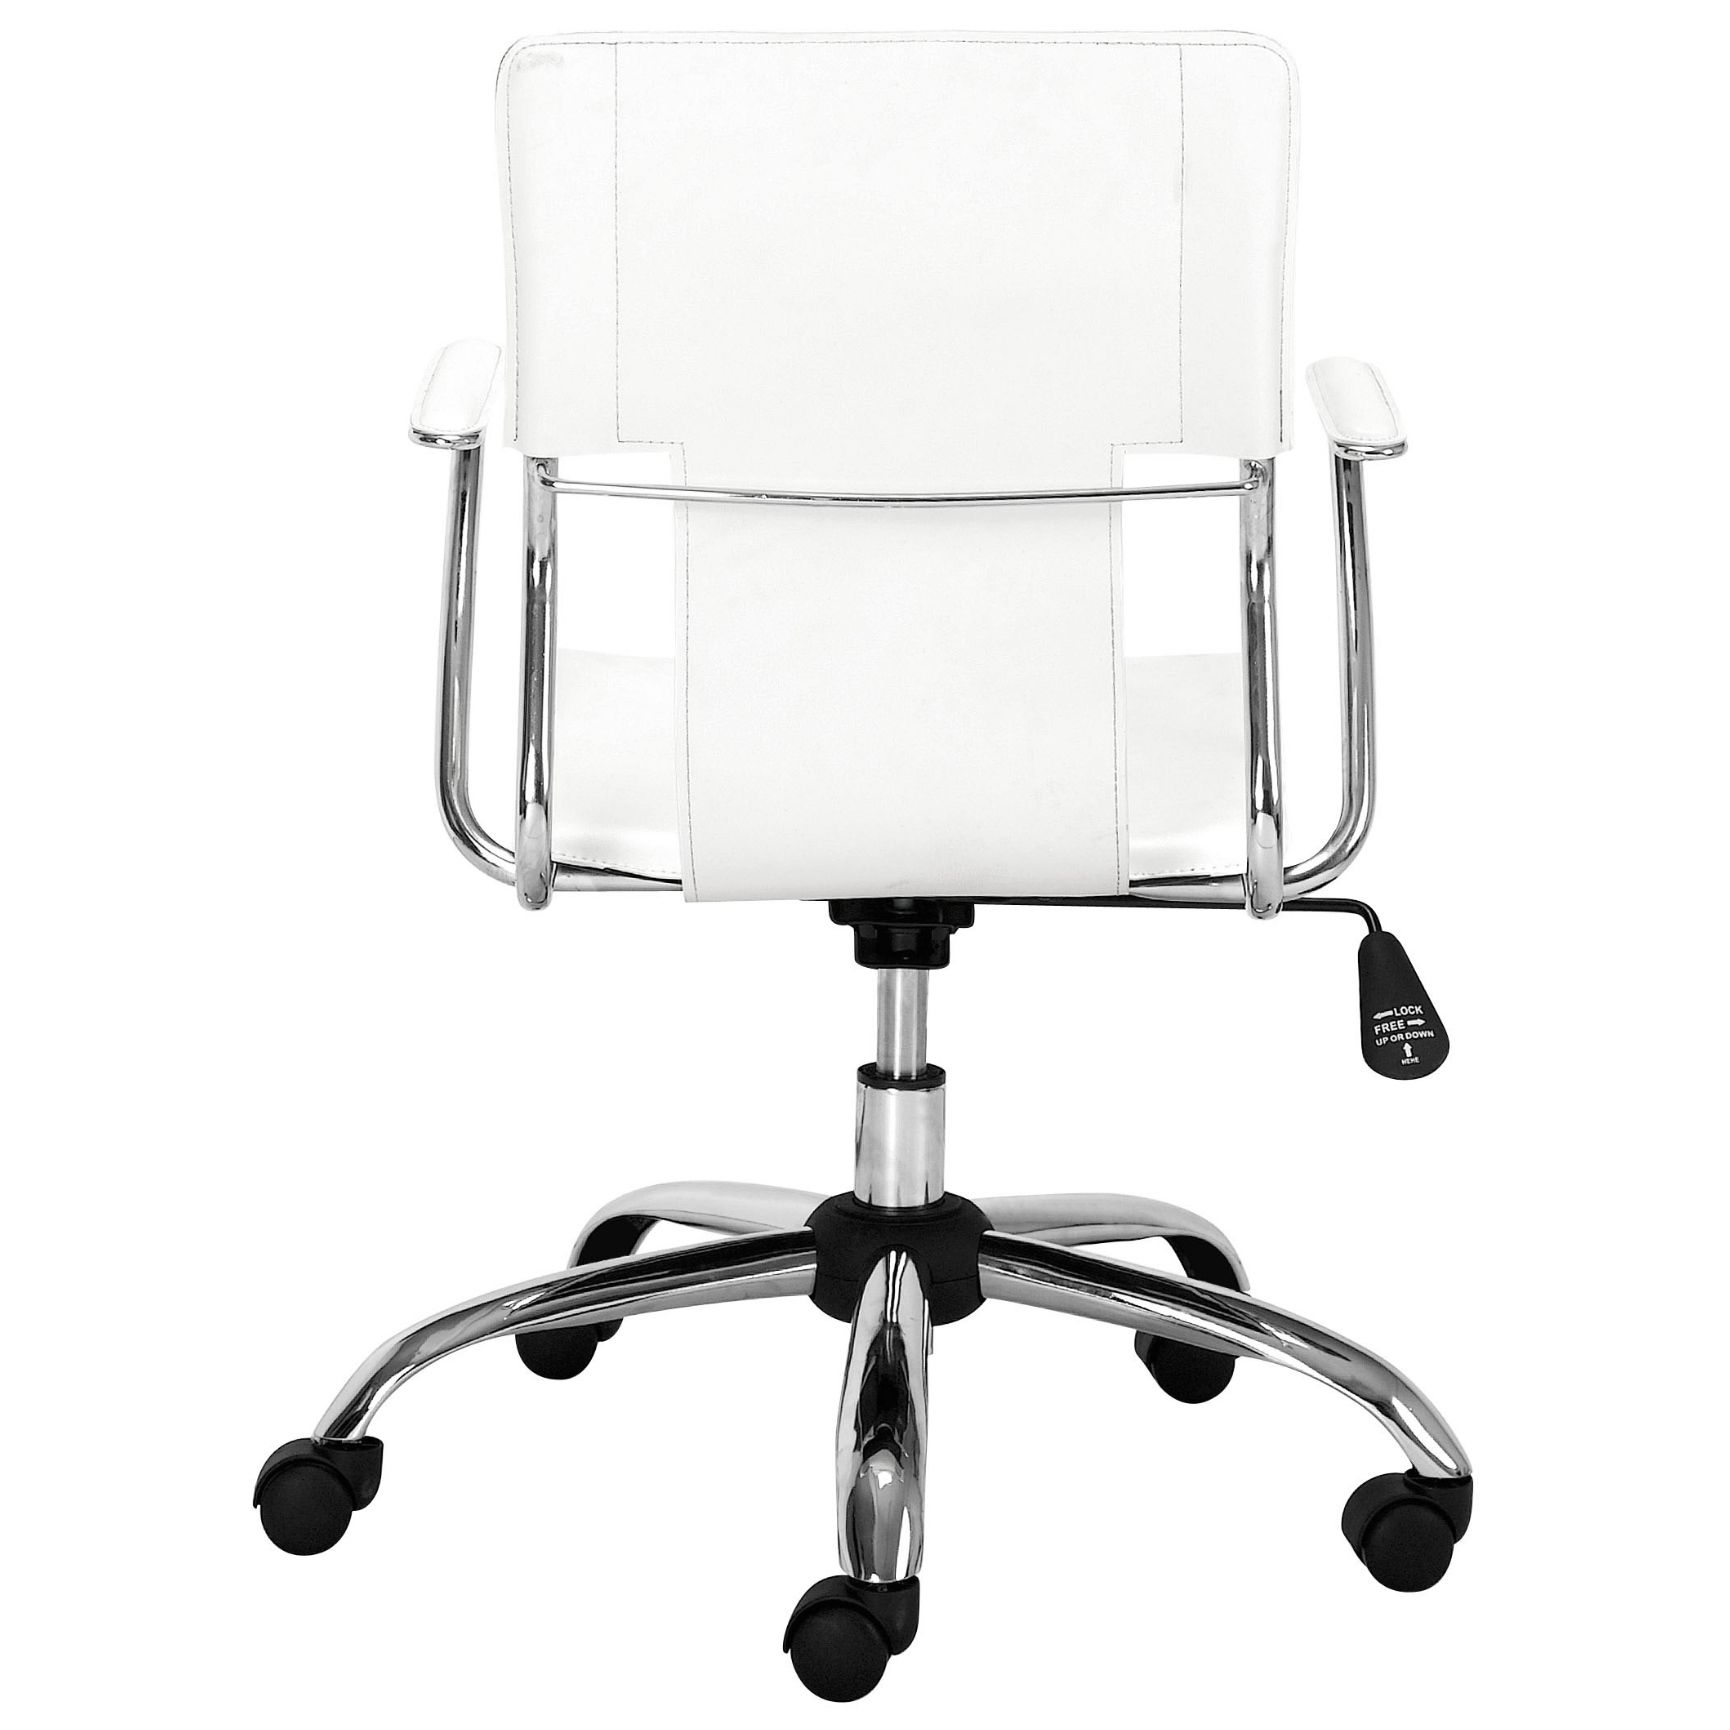 Anton Modern Classic White Leather Silver Chromed Steel Swivel Office Chair White Office Chair Office Chair Adjustable Office Chair